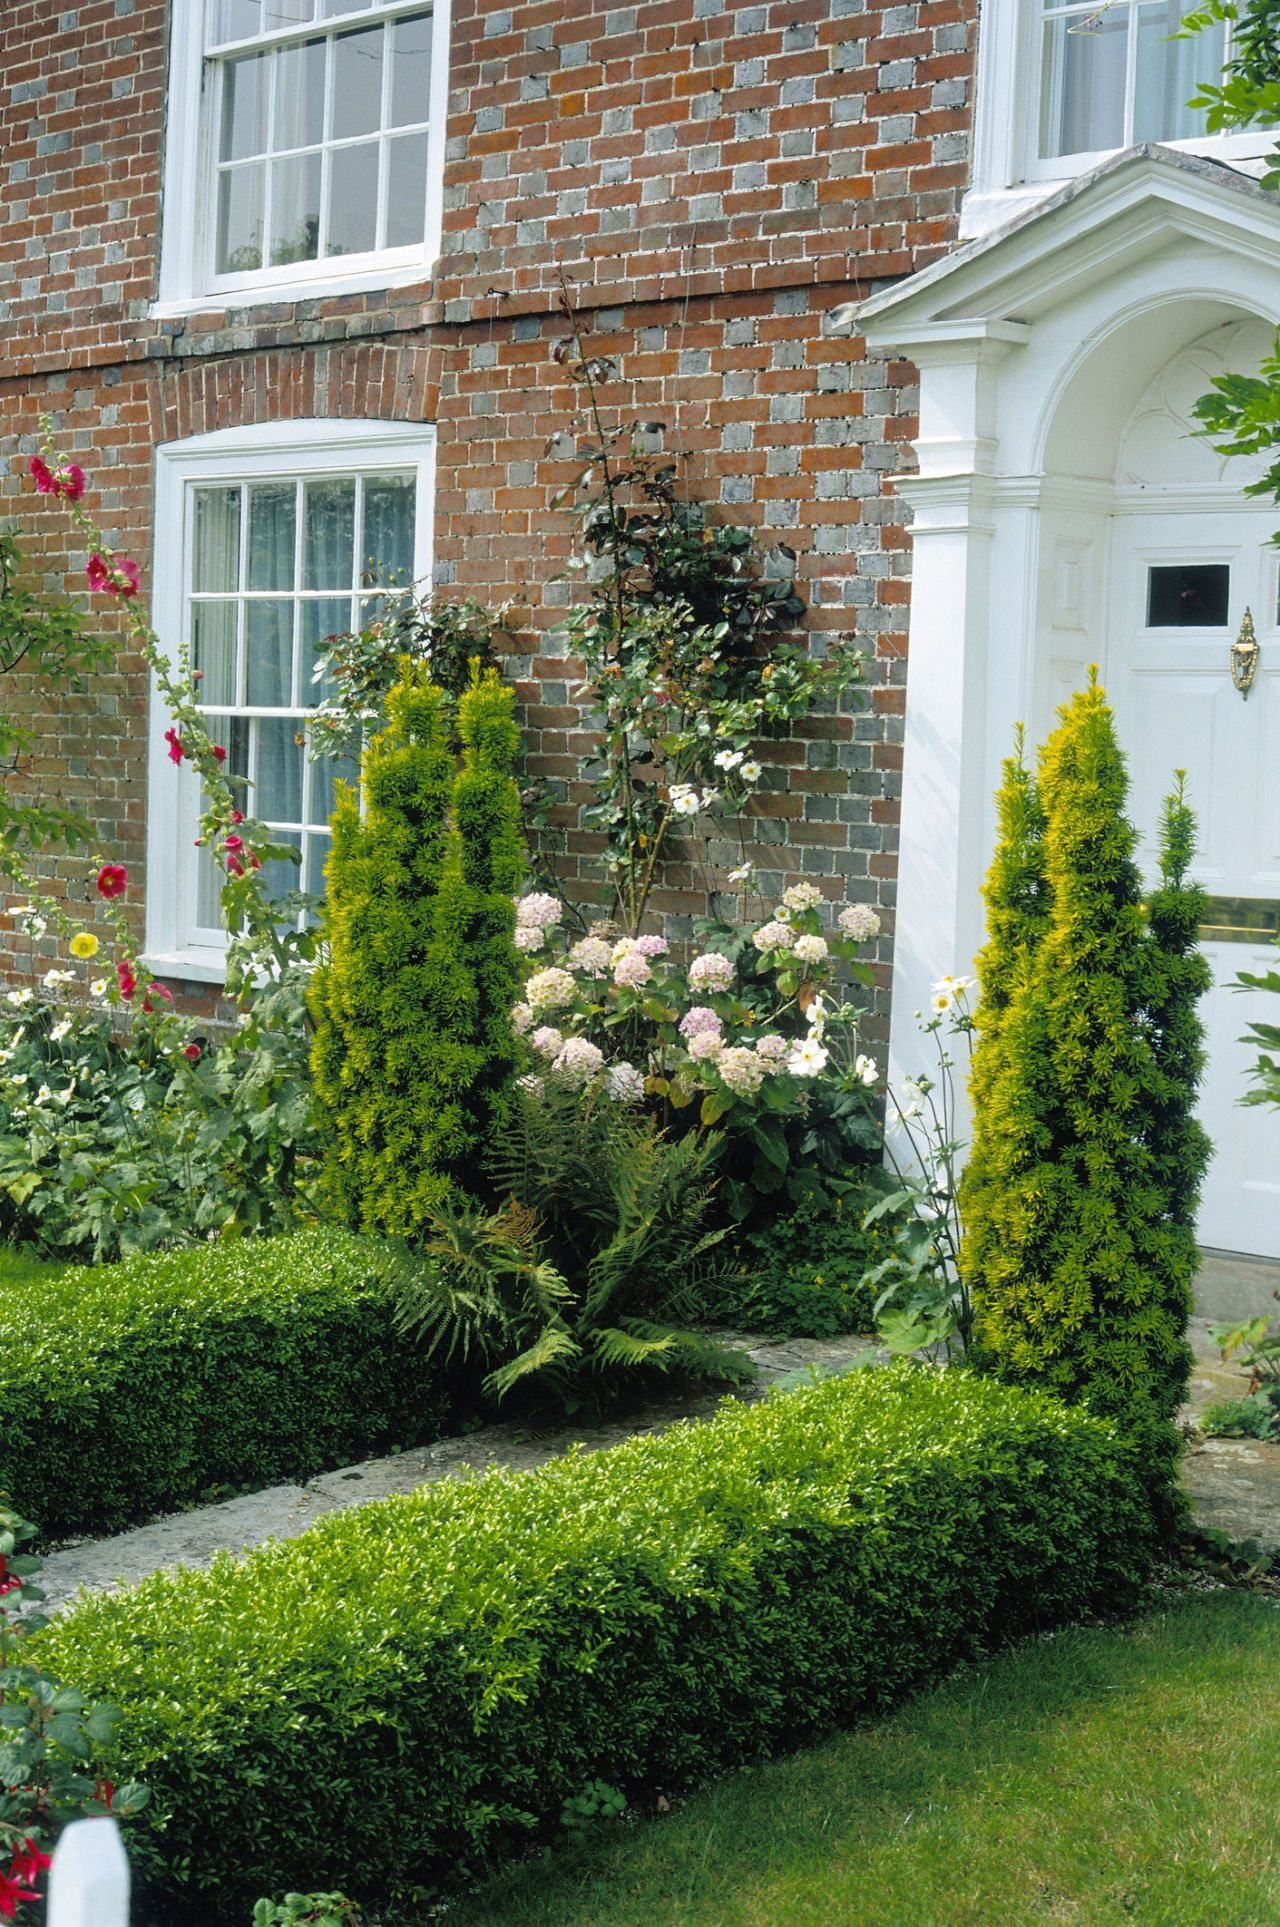 Path Edged With Small Box (Buxus) Hedge Leading To House Front, Front Garden.  Getty ImagesJanet Johnson